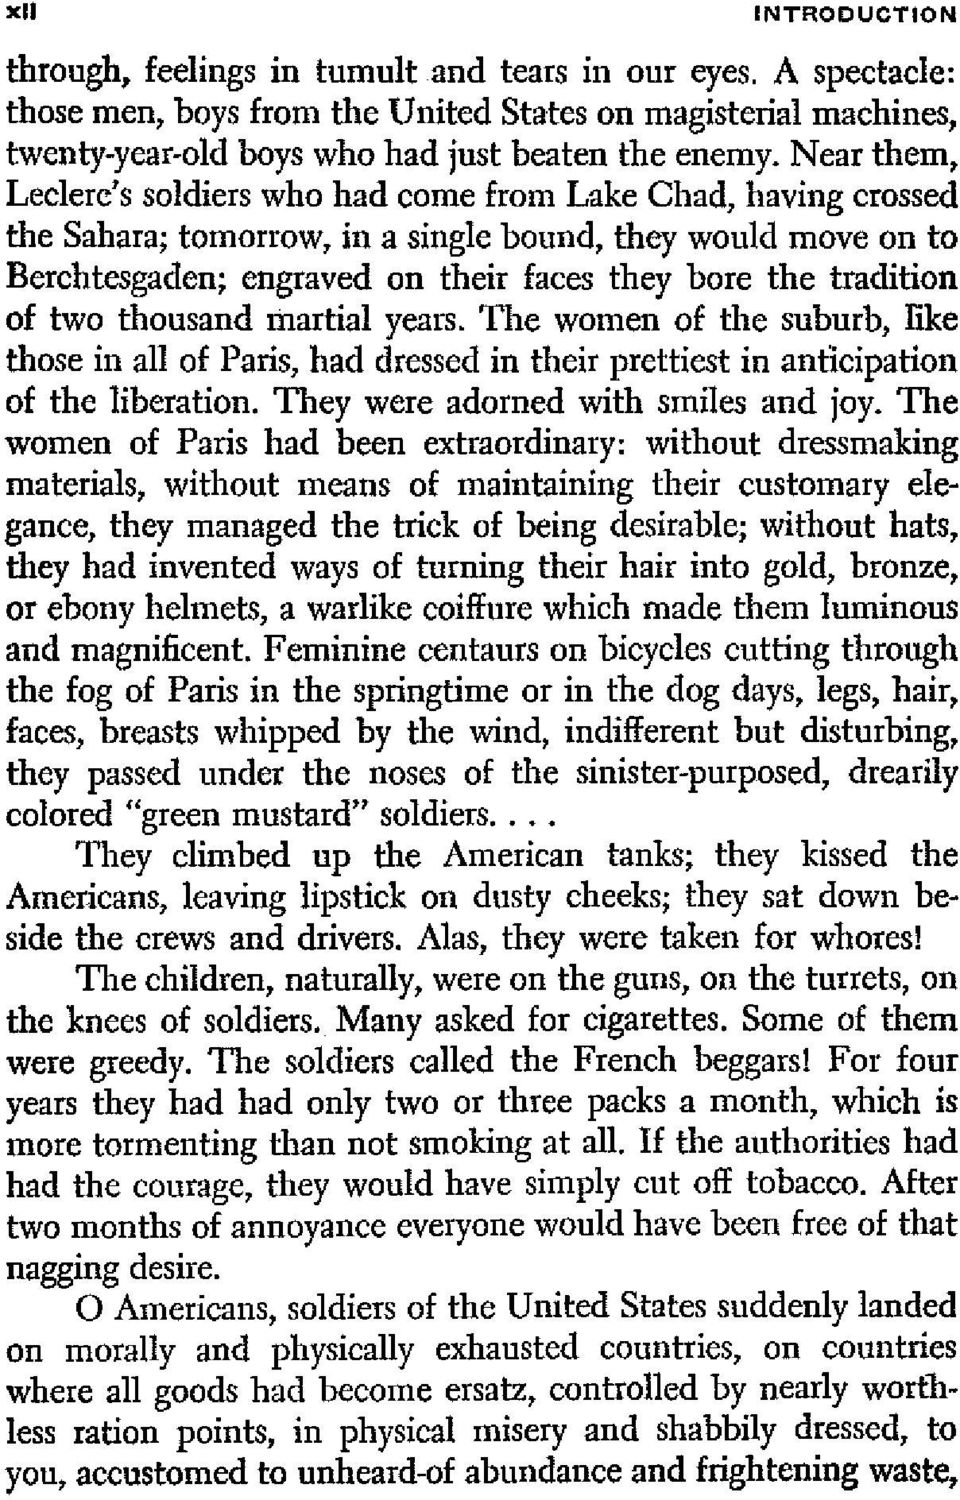 of two thousand martial years. The women of the suburb, like those in all of Paris, had dressed in their prettiest in anticipation of the liberation. They were adorned with smiles and joy.